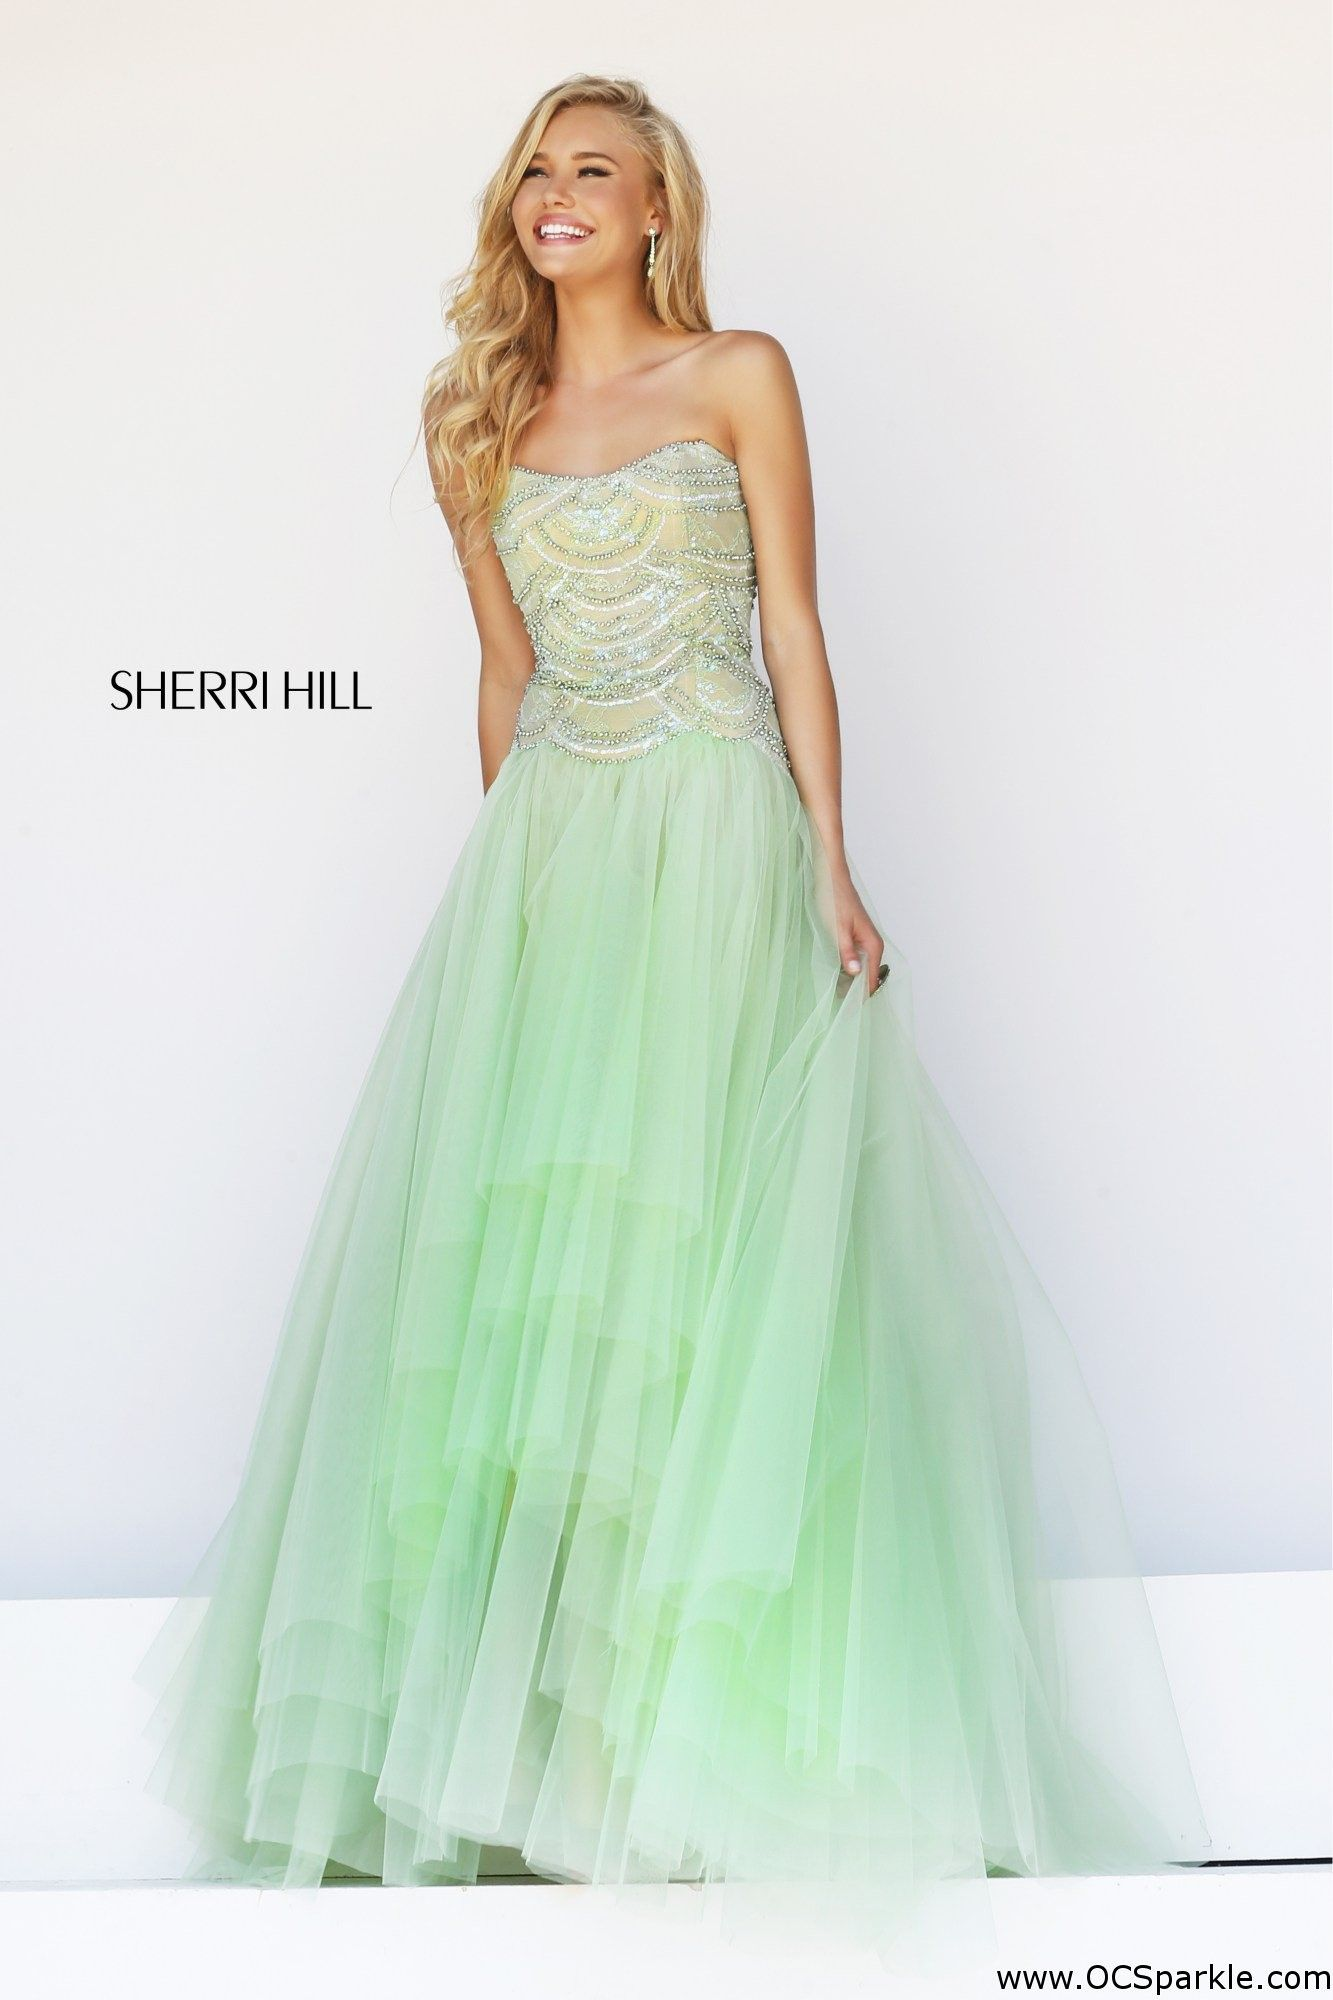 Sherri Hill 11082 prom dress for the low price of 550.00. All Sherri Hill dresses are brand new with tags and labels attached on every 11082!